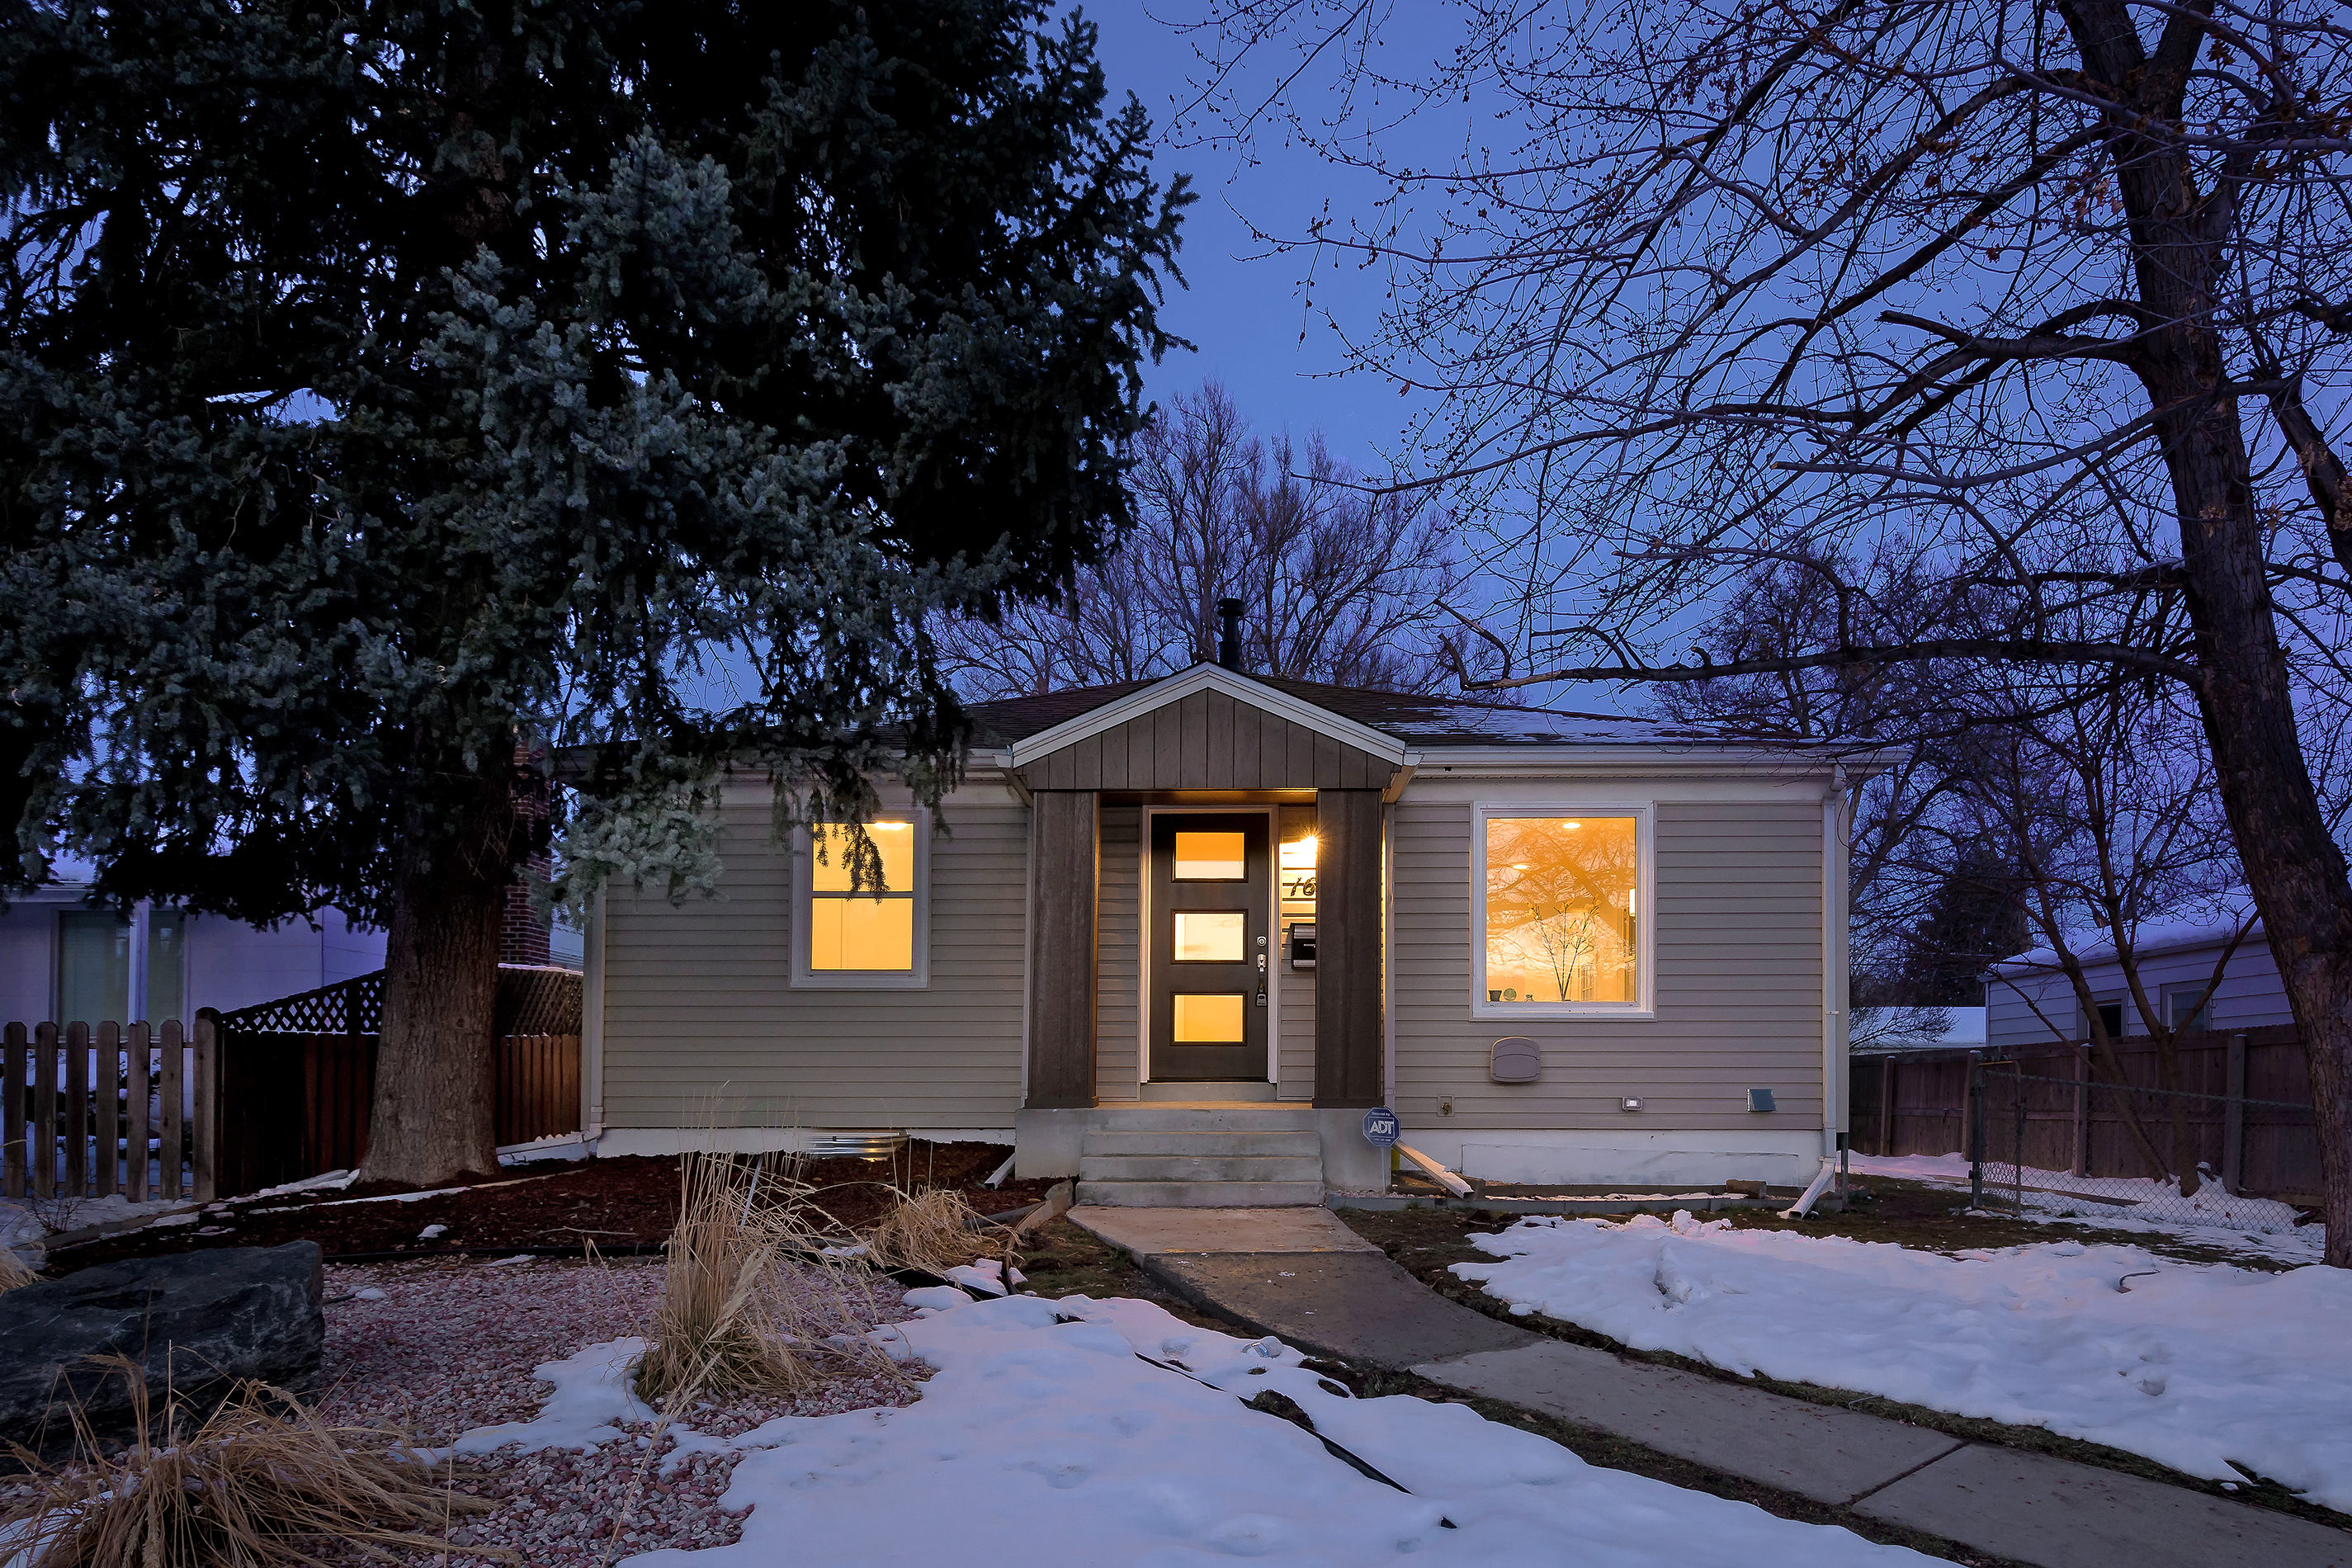 1612 S Columbine St Denver Listed by Jason Peck